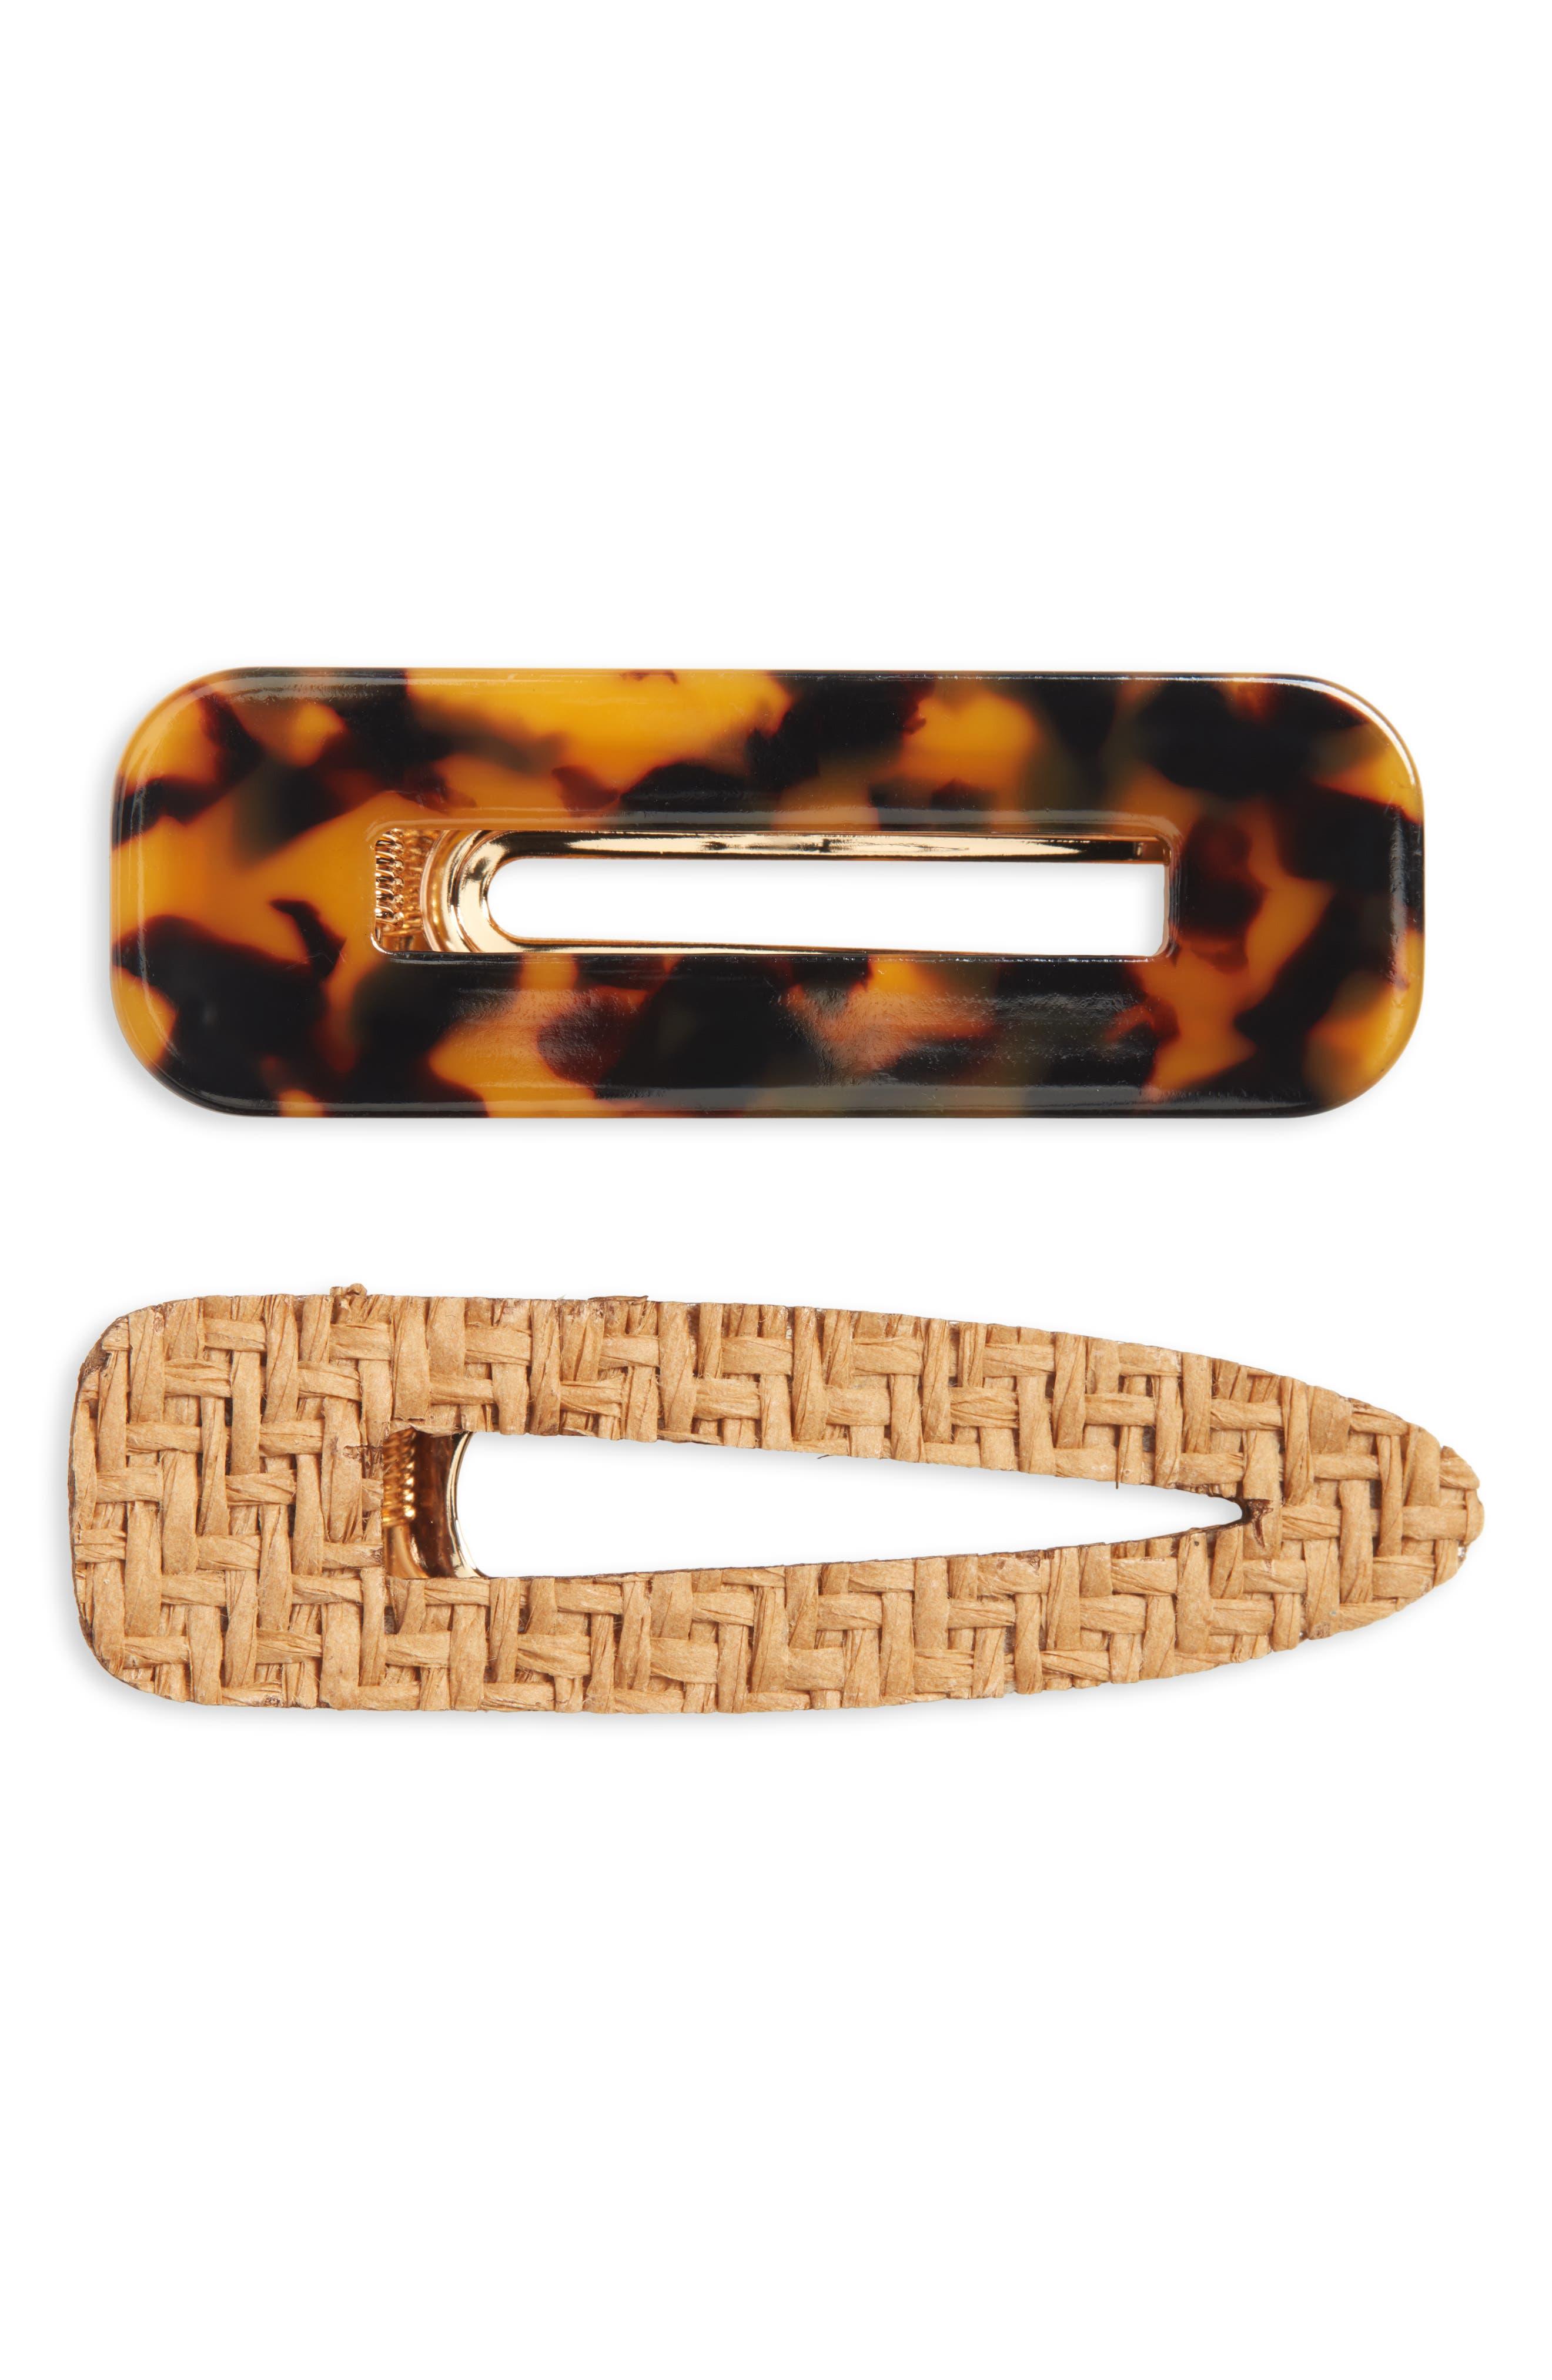 These two clips come in woven straw and tortoiseshell-pattern resin, so you can mix and match your look through the week. Style Name: Bp. 2-Pack Resin & Woven Hair Clips. Style Number: 6069272. Available in stores.